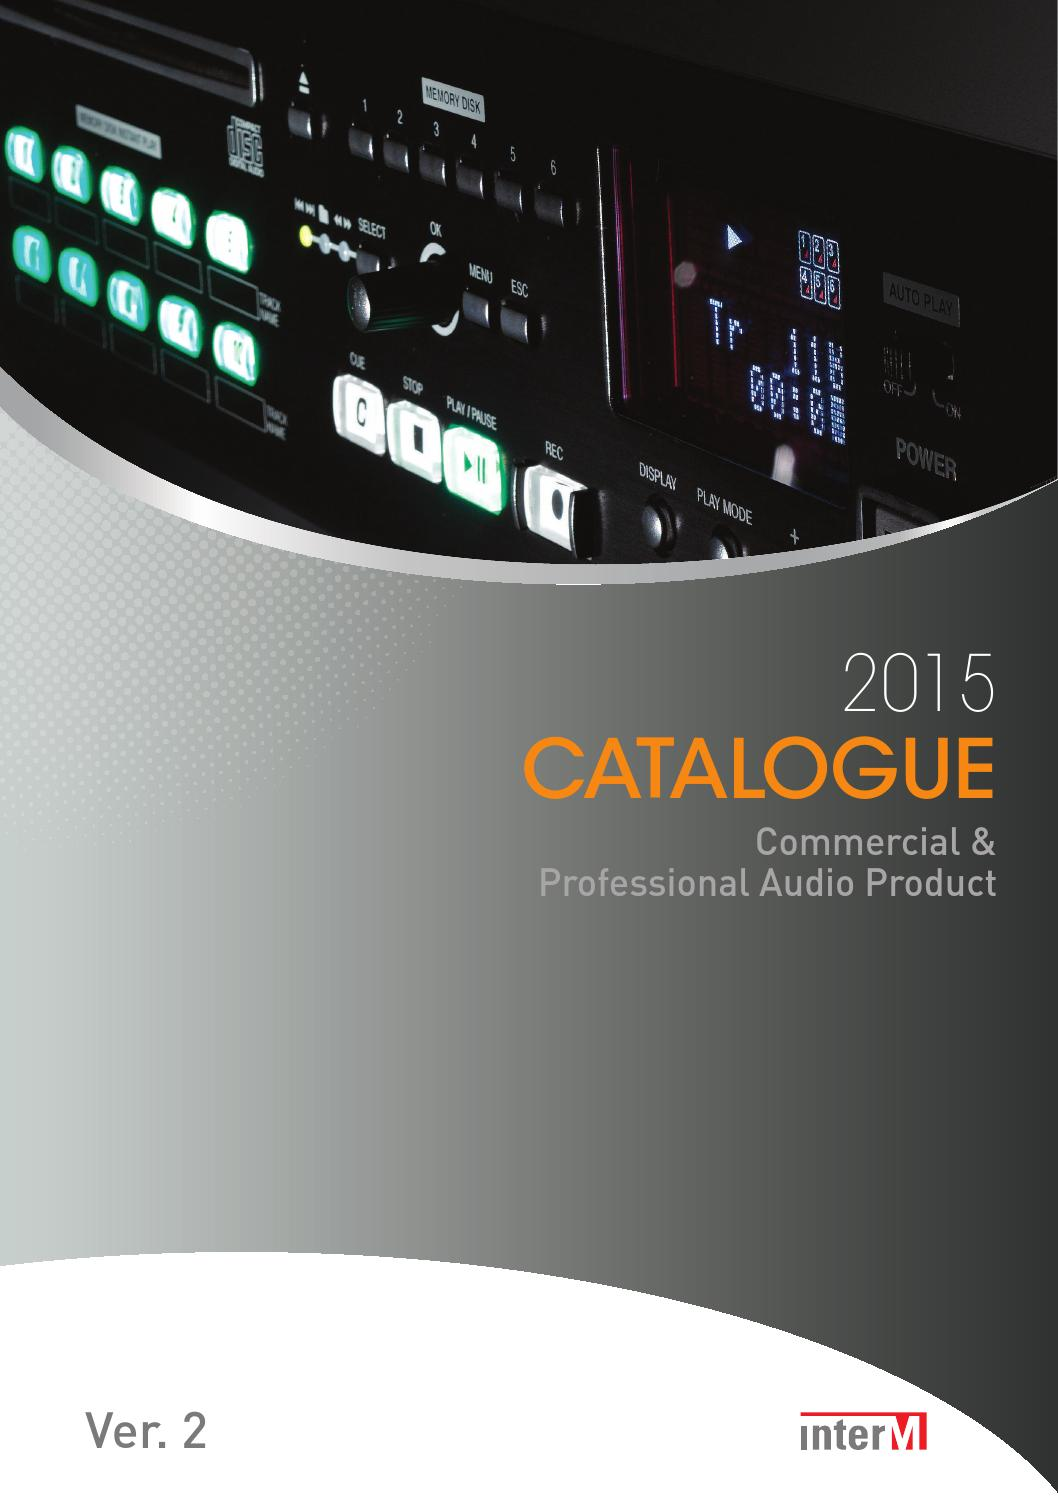 2015 Inter M Product Catalogue 1 By Piotr Grycner Issuu The Radio Builder Audio Amplifier6 Simple Circuits